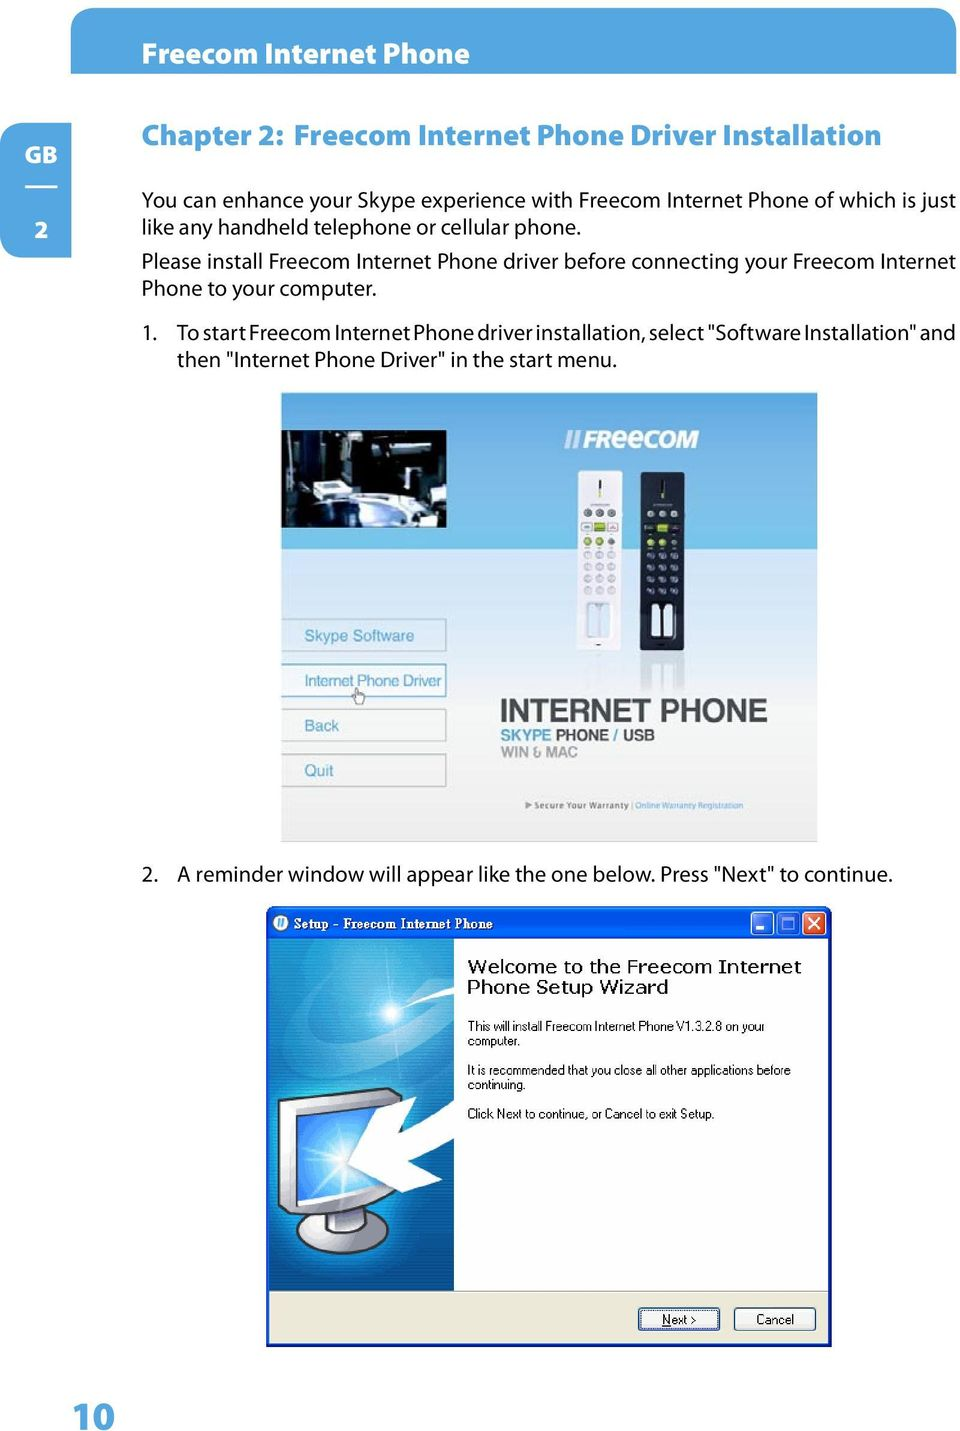 Please install Freecom Internet Phone driver before connecting your Freecom Internet Phone to your computer. 1.